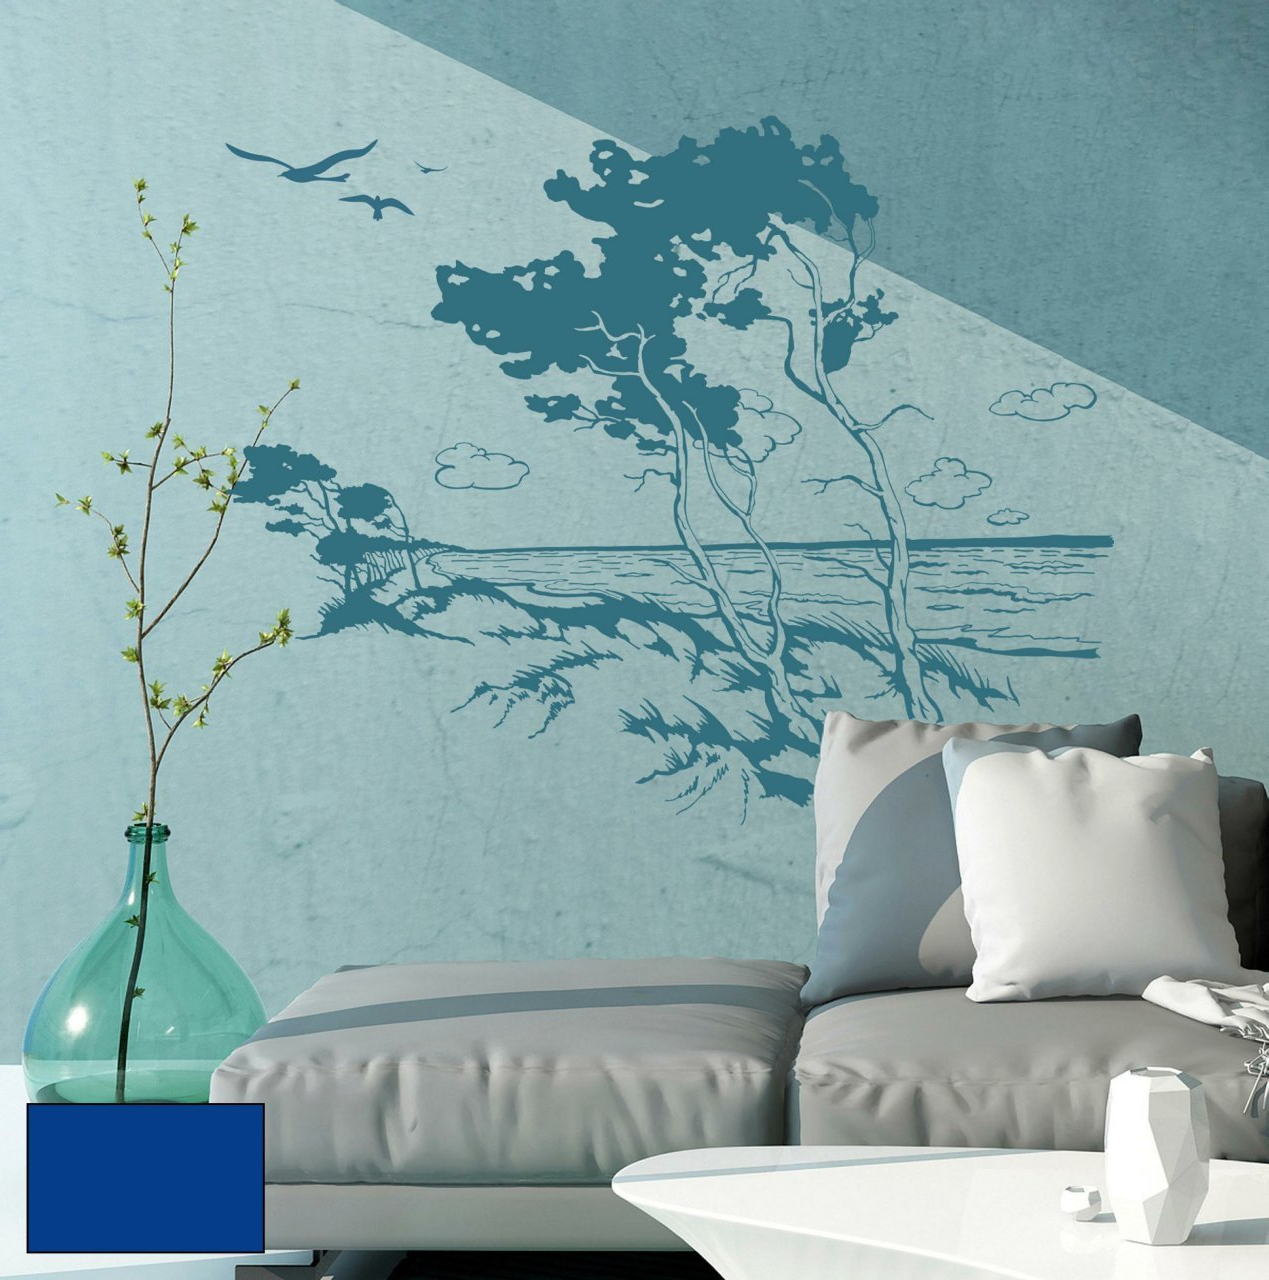 Windswept Tree Wall Decor In Recent Windswept Tree Wall Decal Wall Sticker Decoration Beach Sea Maritime (Gallery 7 of 20)